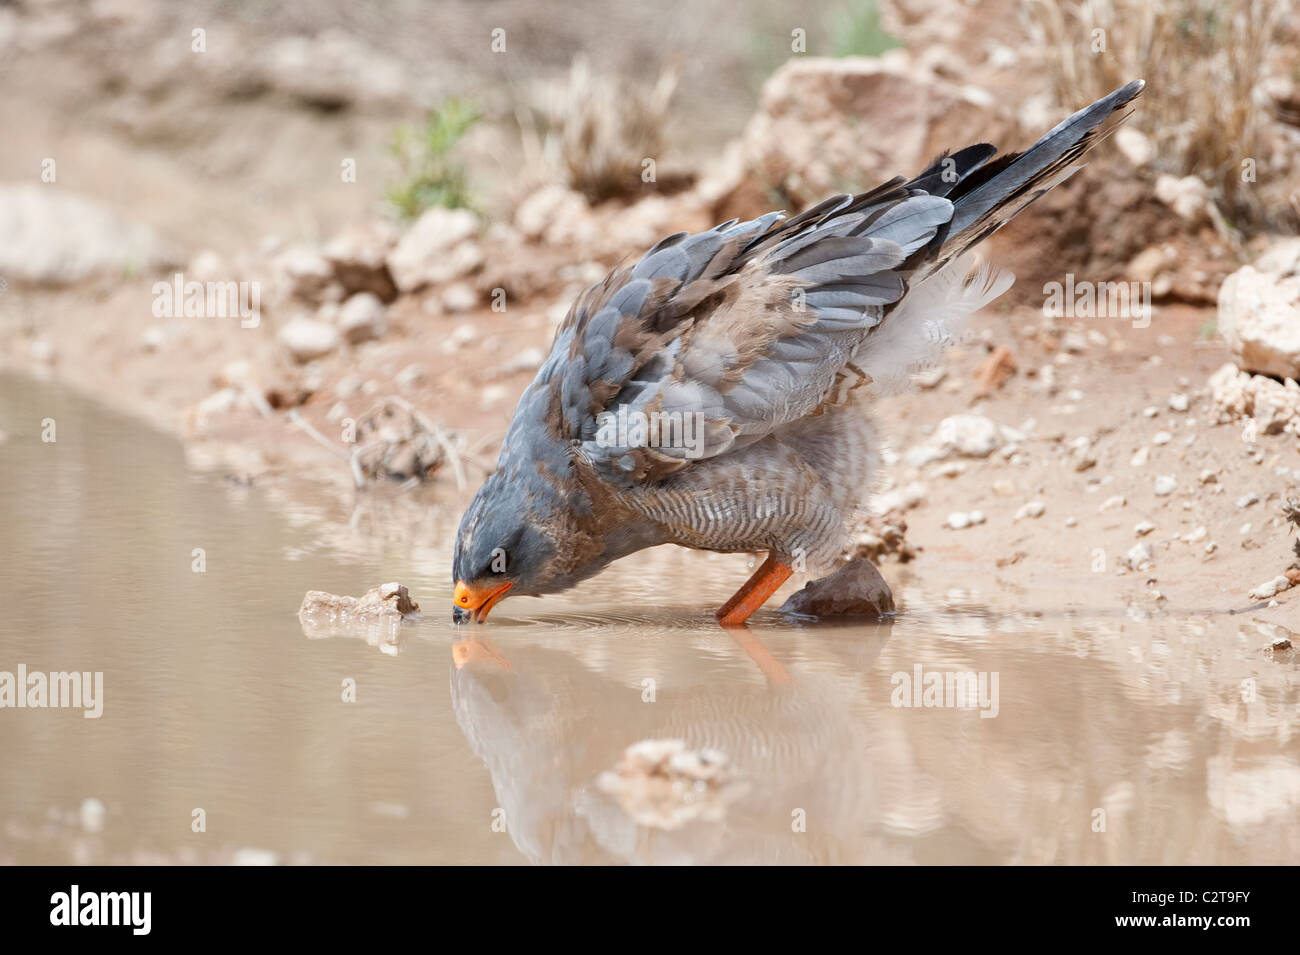 Southern Pale Chanting Goshawk, Melierax canorus, drinking, Kgalagadi Transfrontier Park, South Africa - Stock Image